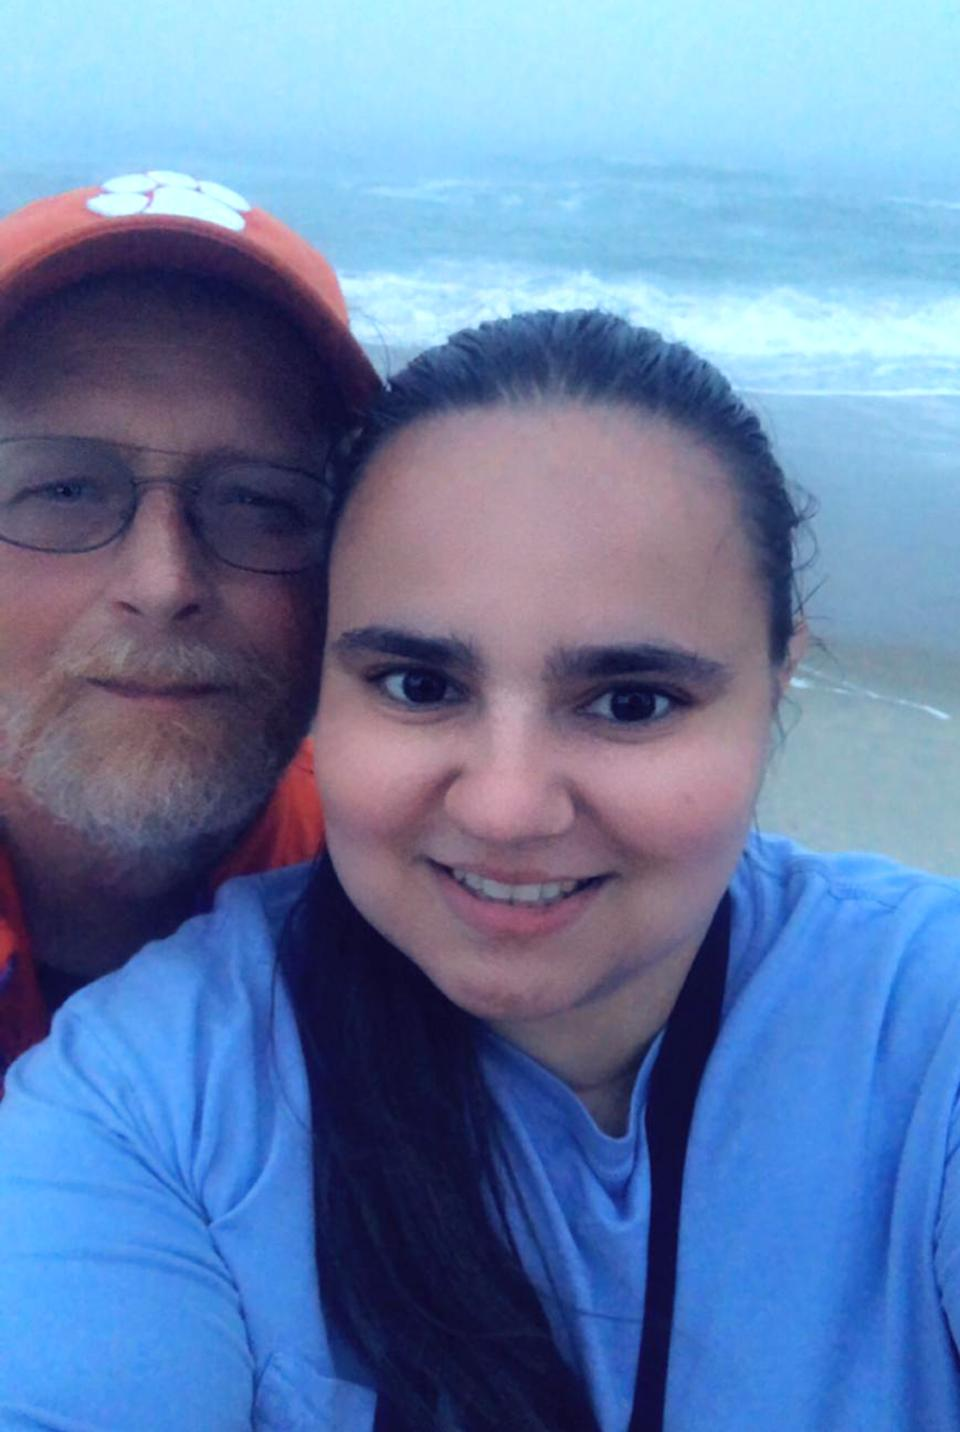 Anda Melton, 29, with her 58-year-old boyfriend and her best friend's dad, Robert Pittman